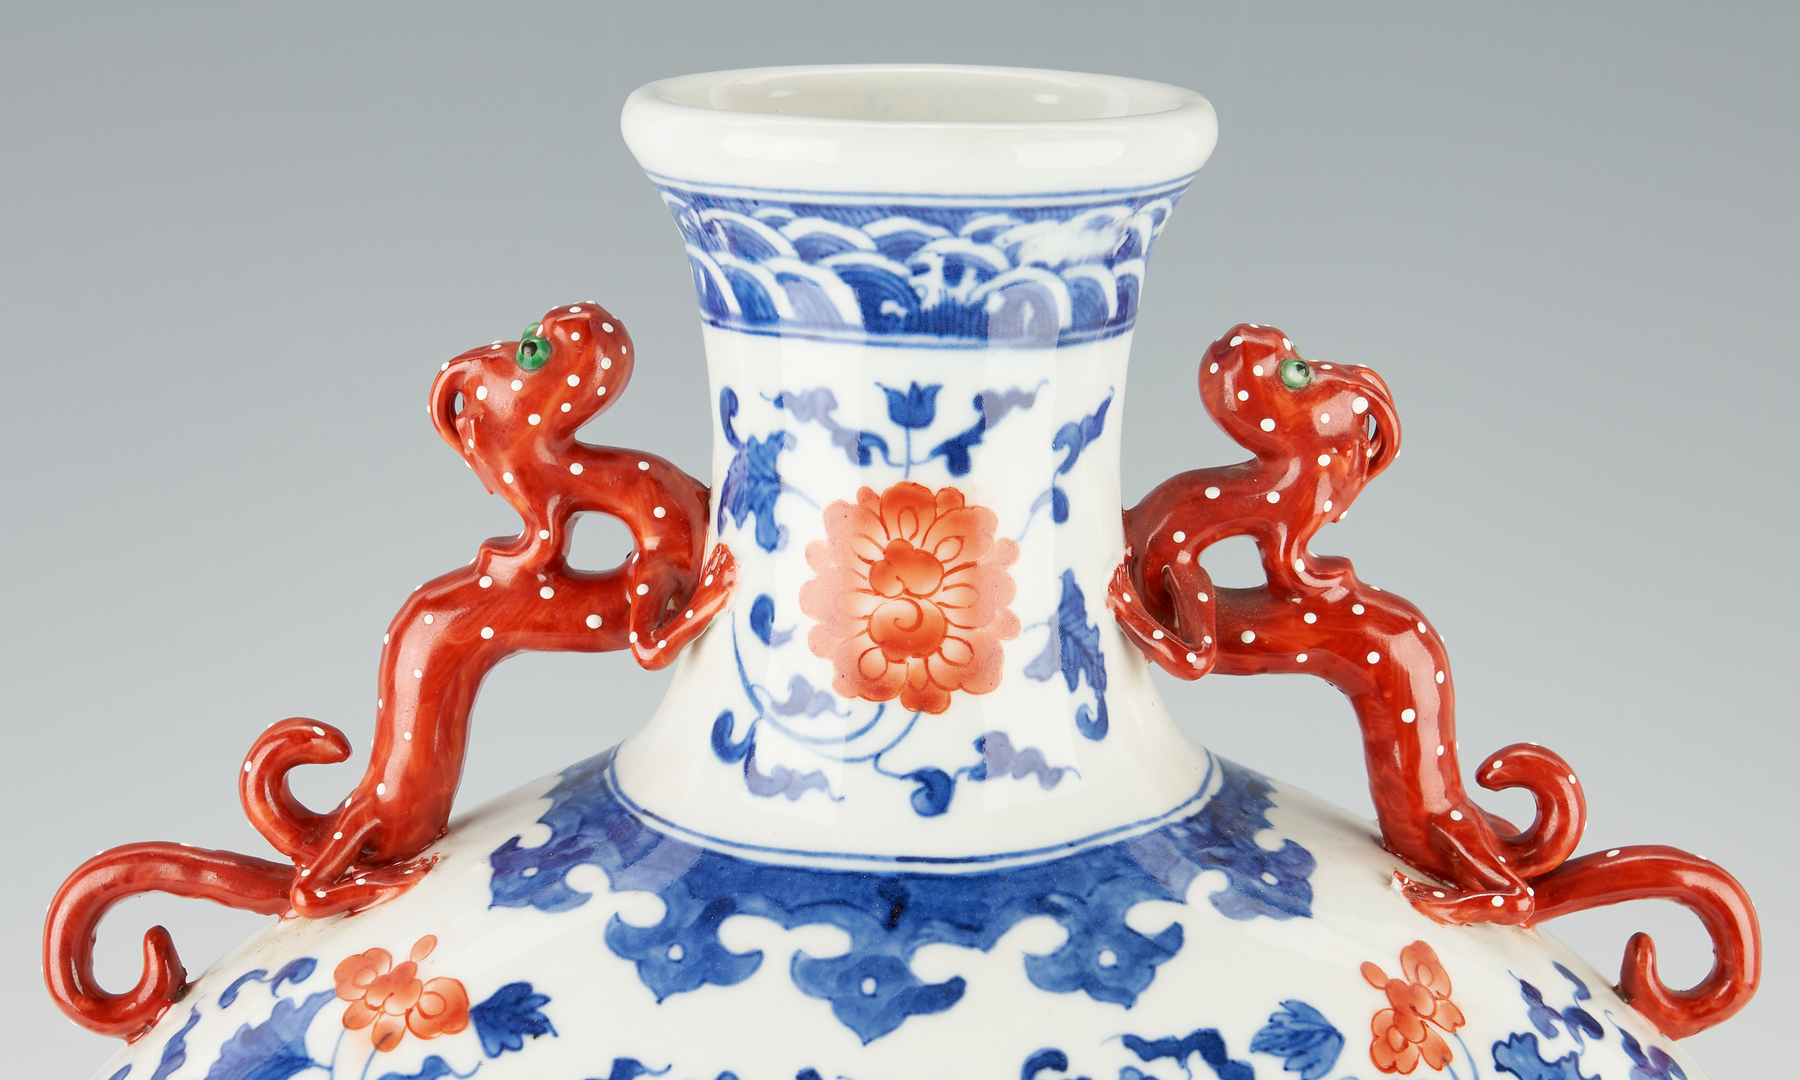 Lot 1176: Chinese Porcelain Moon Flask, Cong Vase, and Rose Medallion Plate